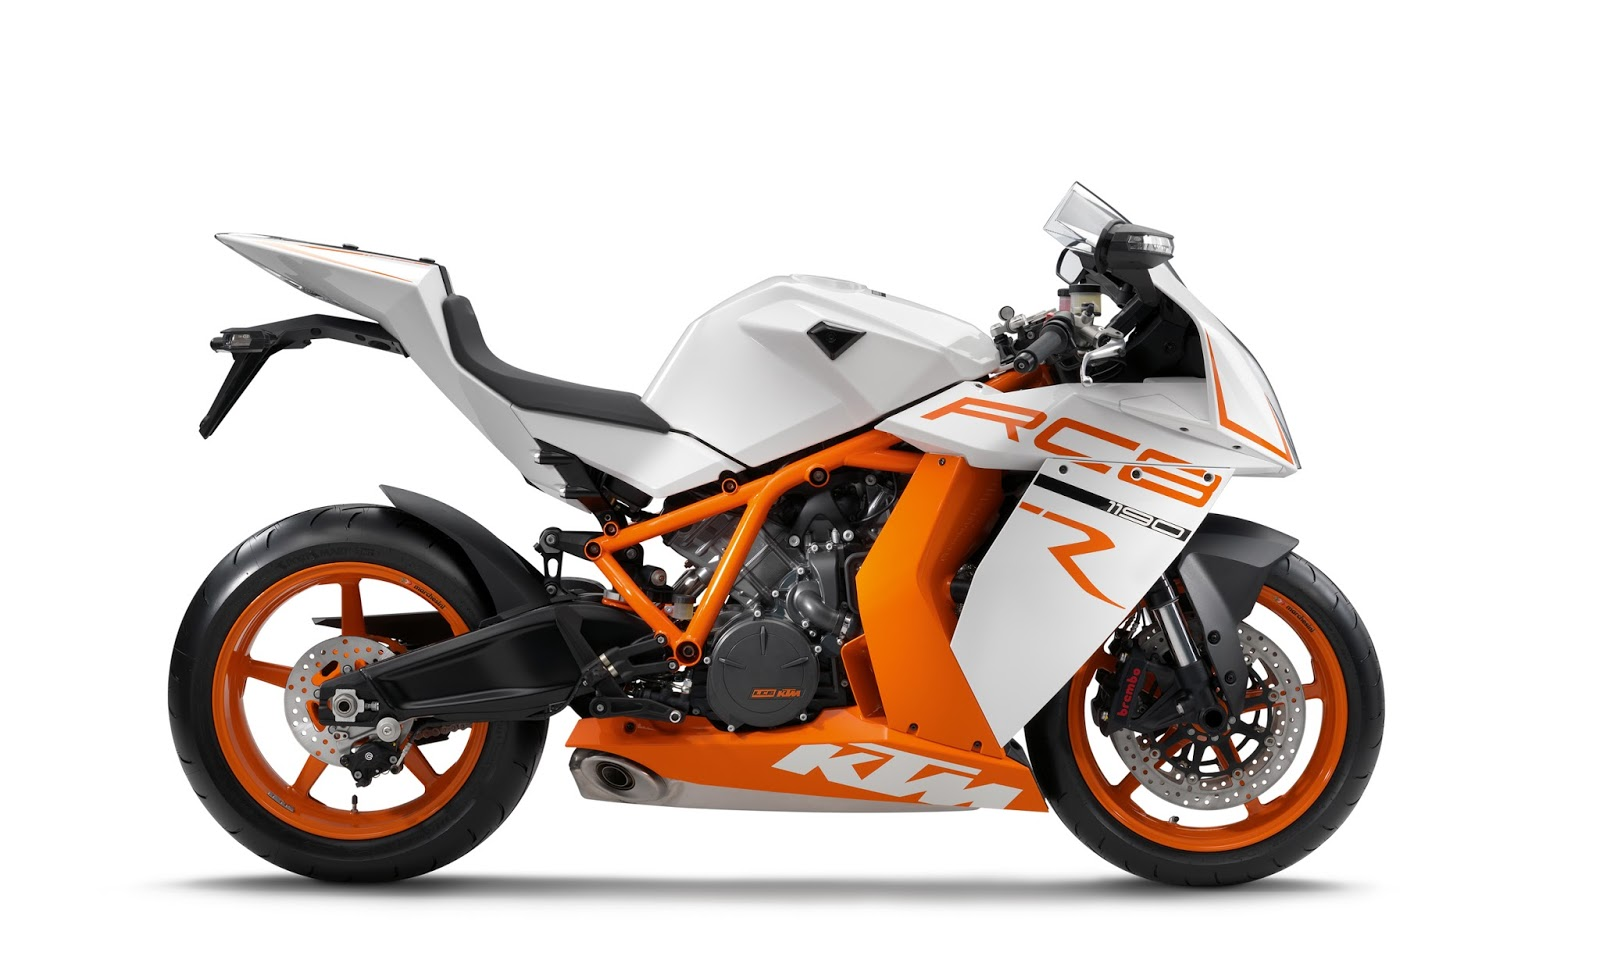 Ktm motorcycles hd wallpapers free wallaper downloads ktm sport - Ktm Rc 8 1190 Is A Sports Bike Super Bike This Bike Manufactured By Ktm First Model Is Released In 2008 Engine Type Is V Twin The Current Models From